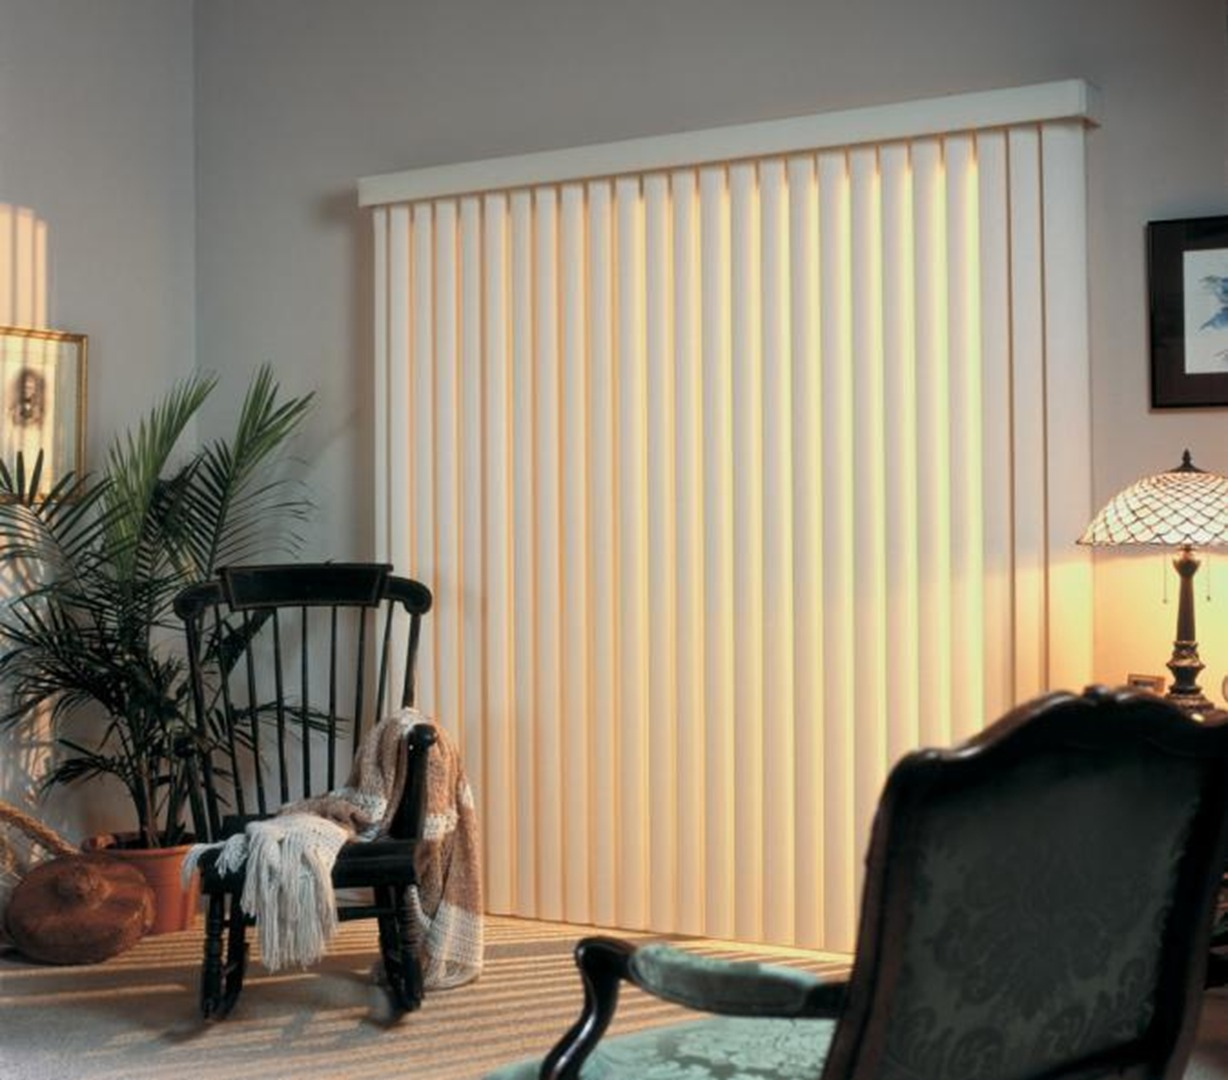 Apartment sliding door curtains - Ez Glide Vertical Blinds For Apartments Or Home Bought By Contractor With Rocking Chair